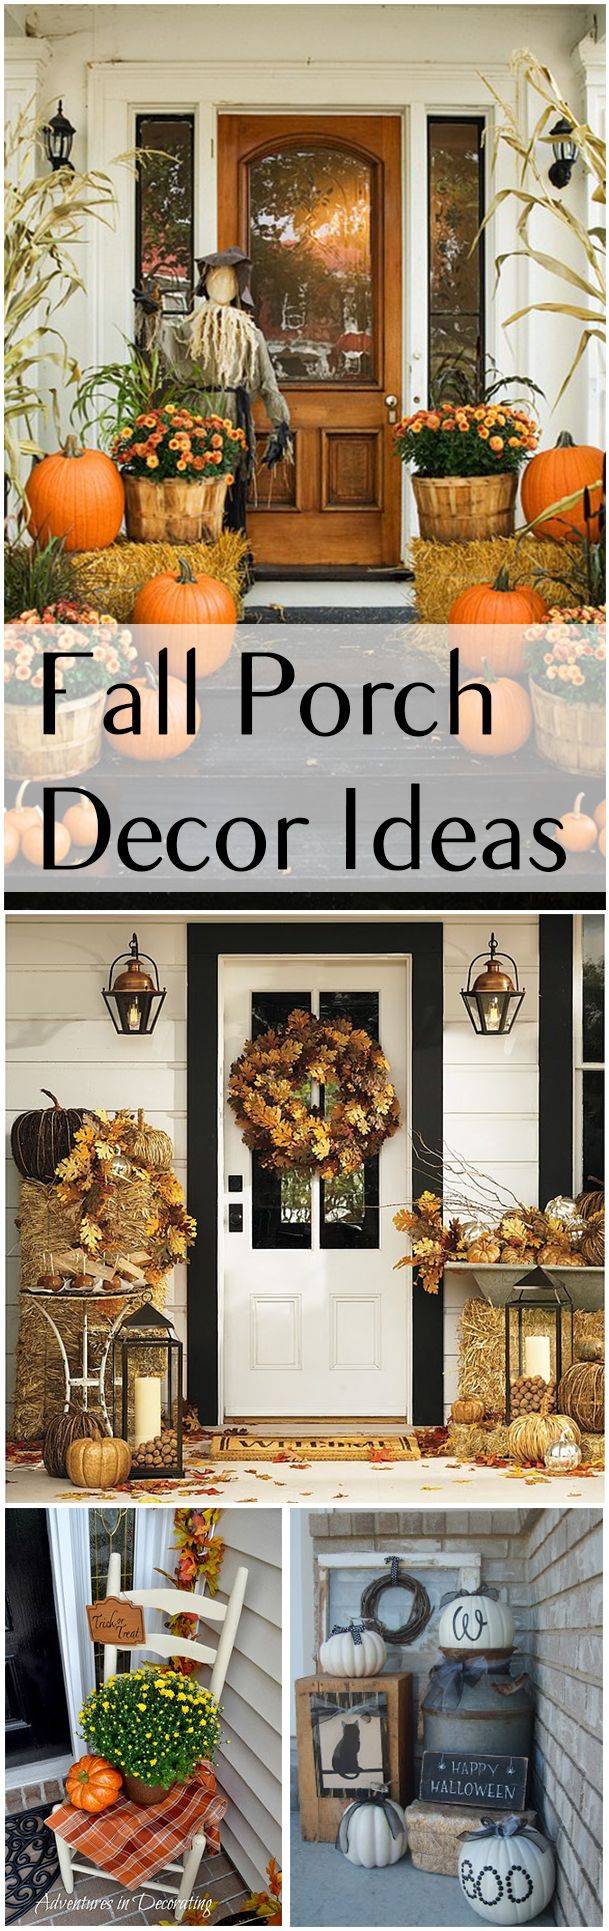 871 Best Fall Decorating Ideas Images On Pinterest | Fall Home Decor,  Floral Arrangements And Fall Decorating